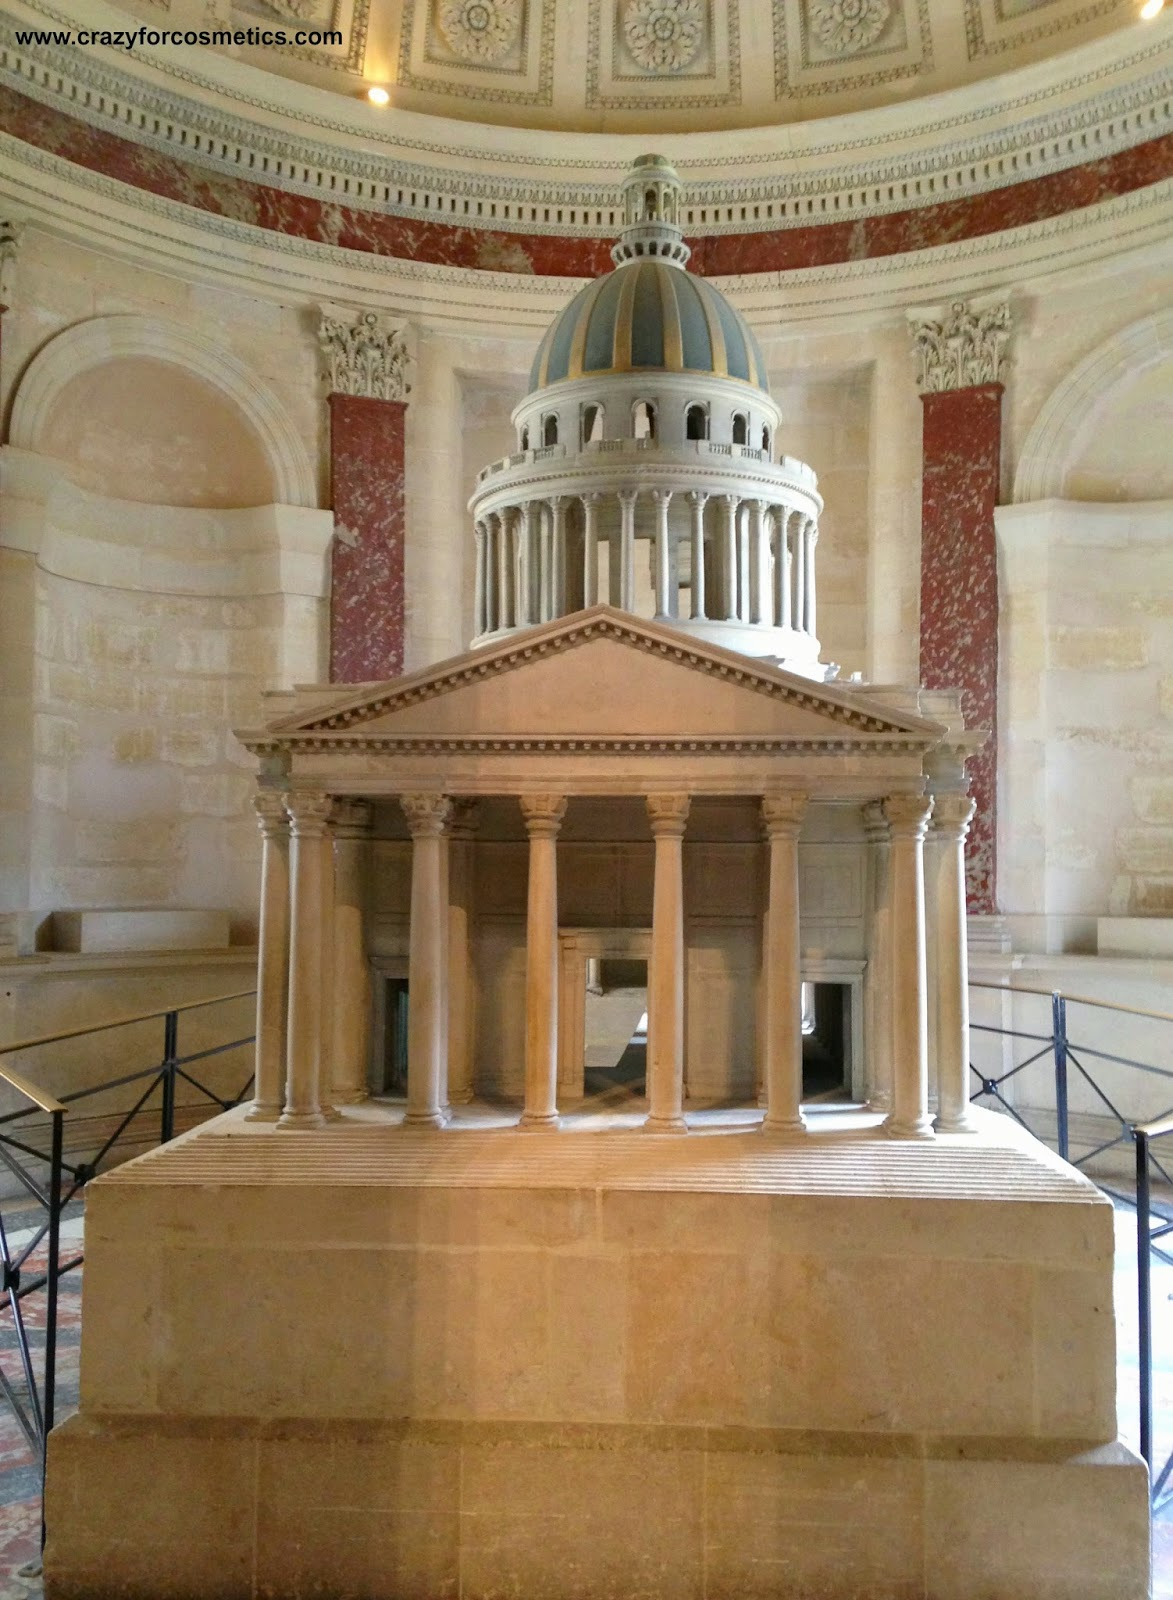 Paris travel attractions - The Pantheon